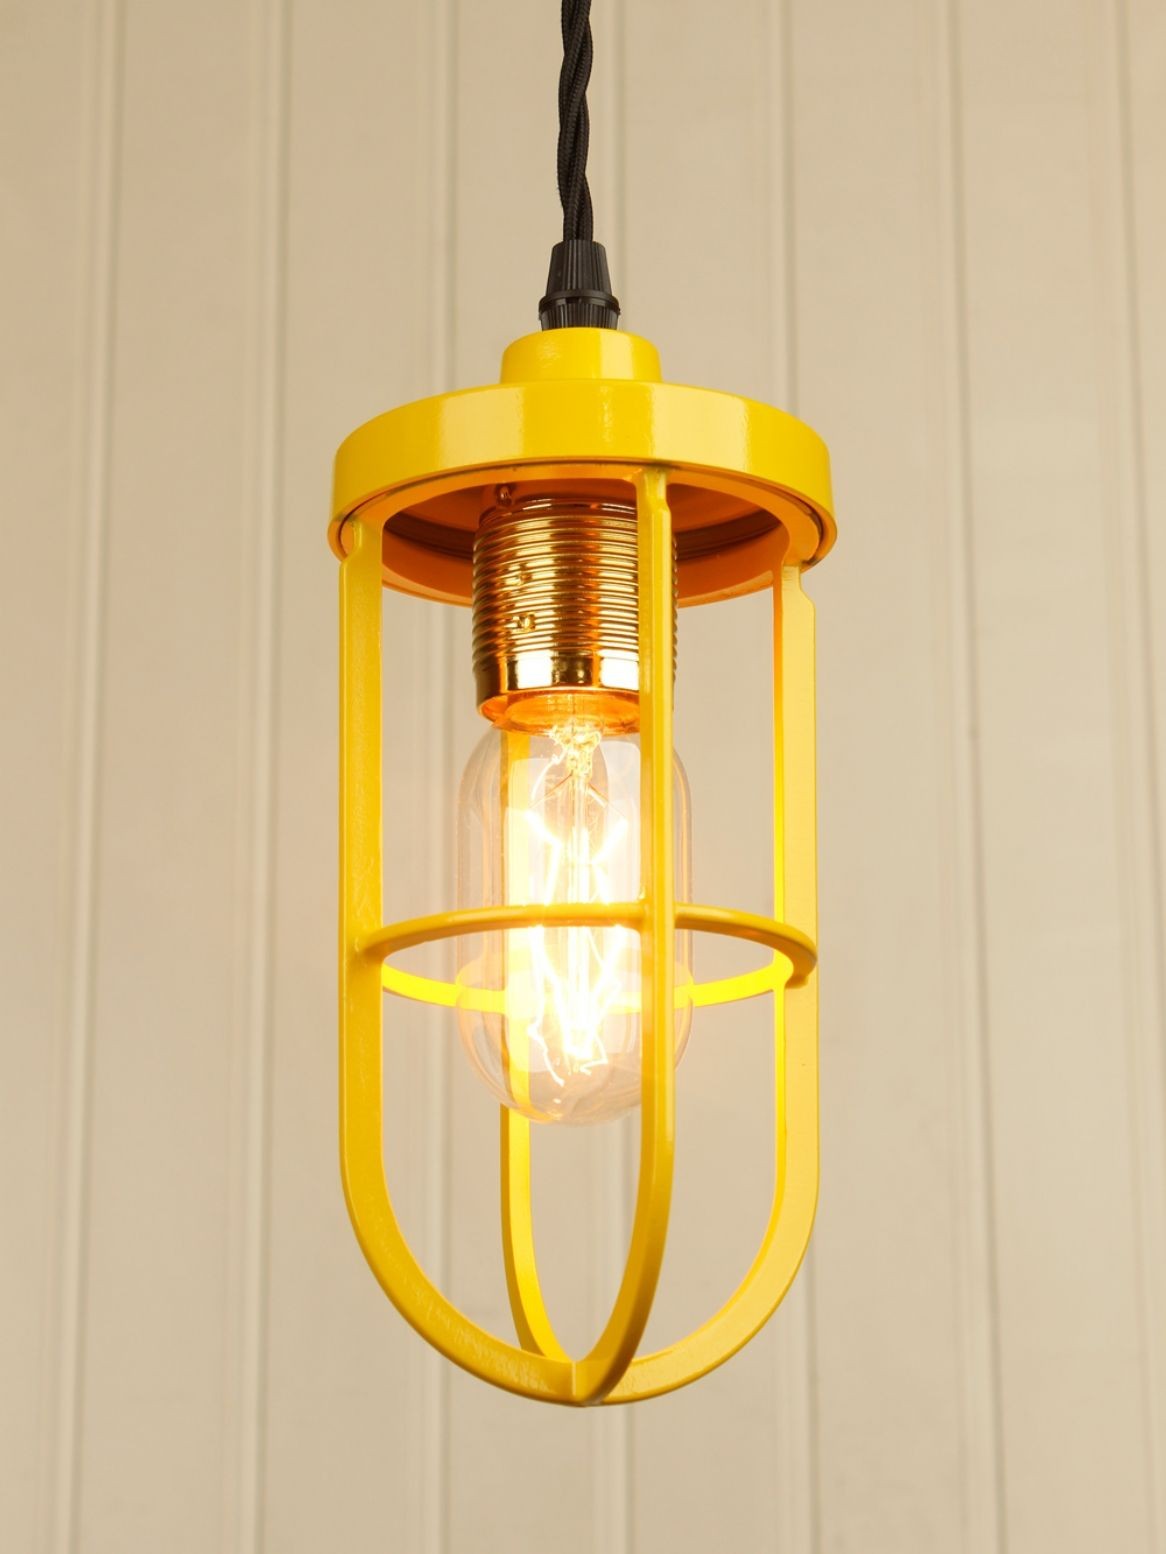 Industrial Style Ceiling Pendant Light With A Yellow Cage Shade